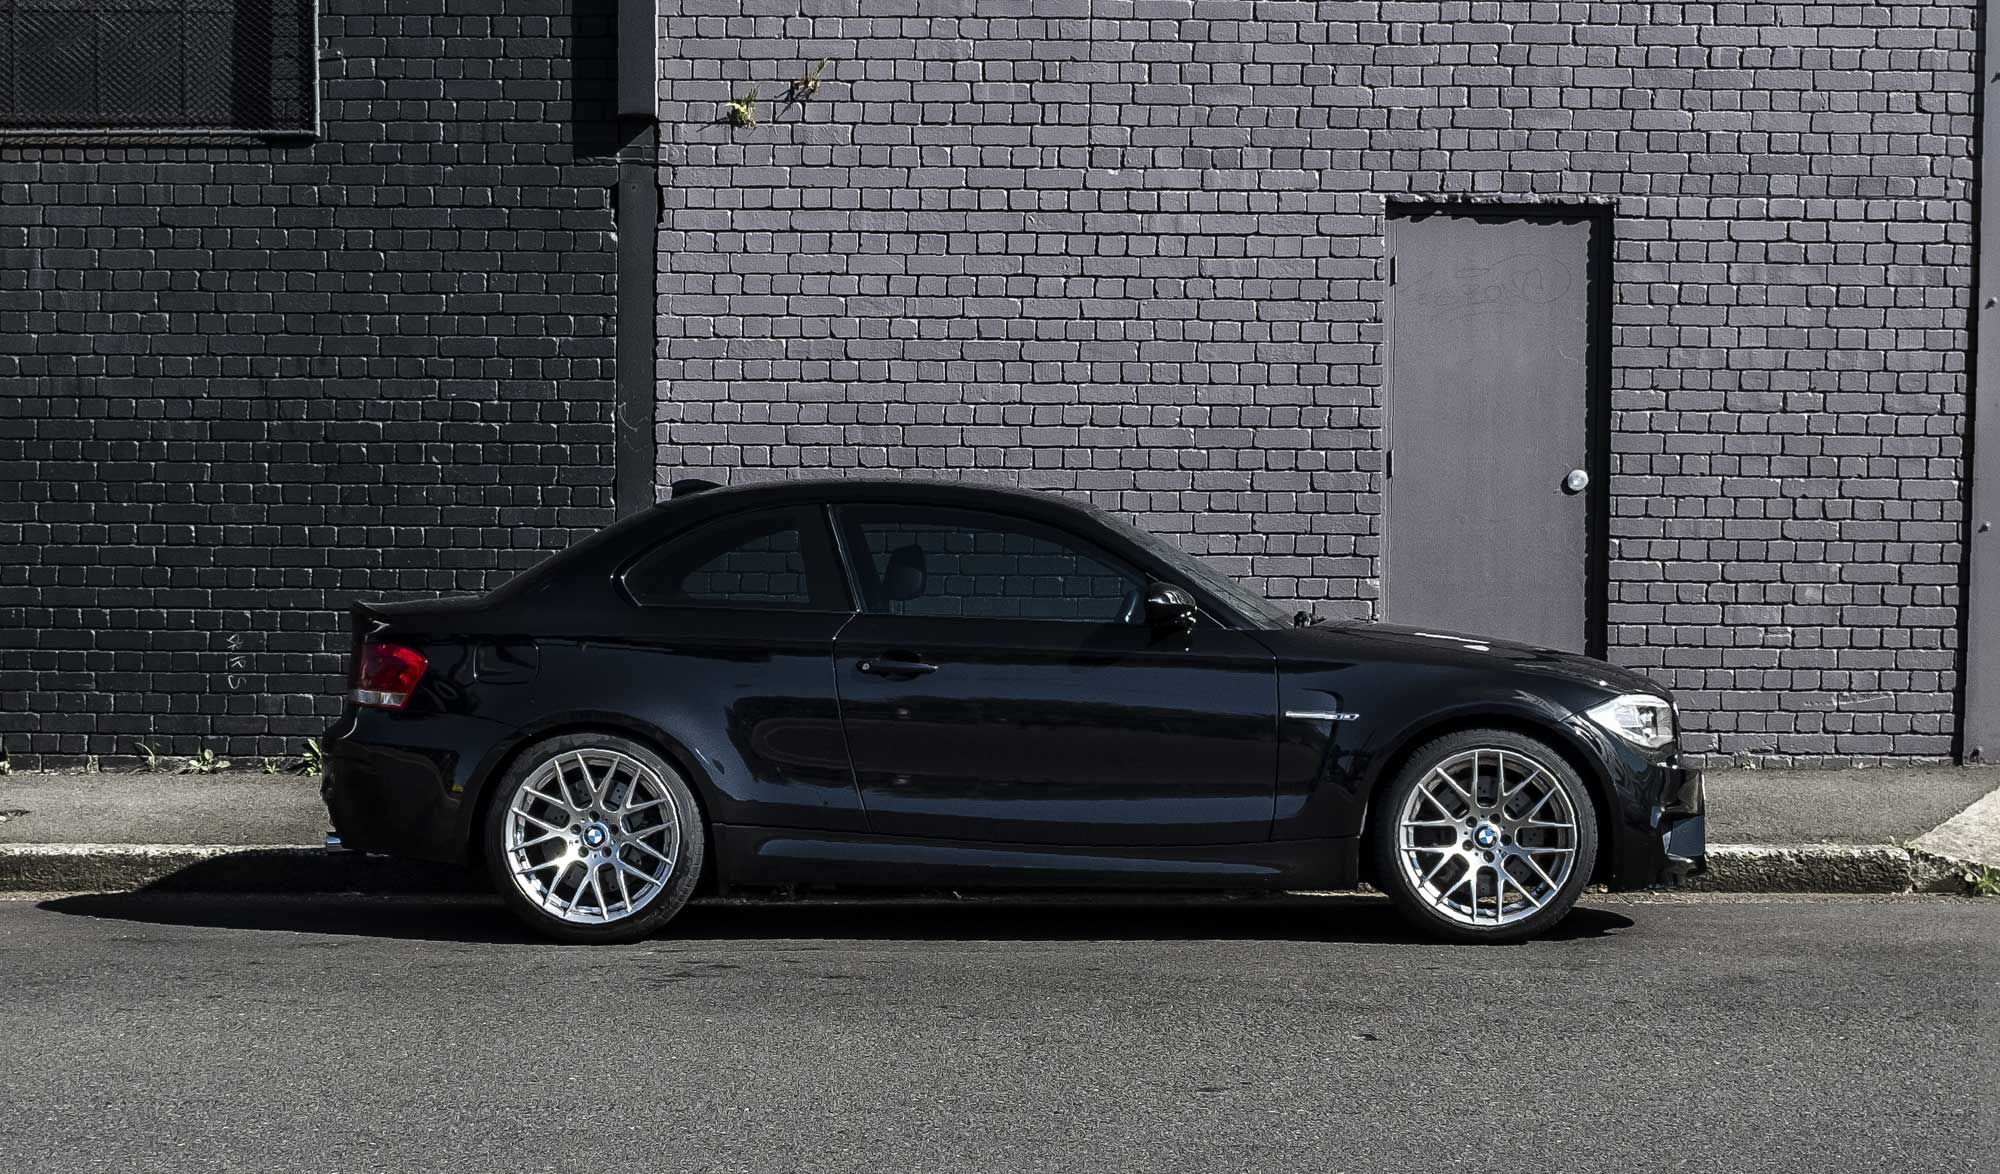 Black BMW 1M in front of a grey brick wall